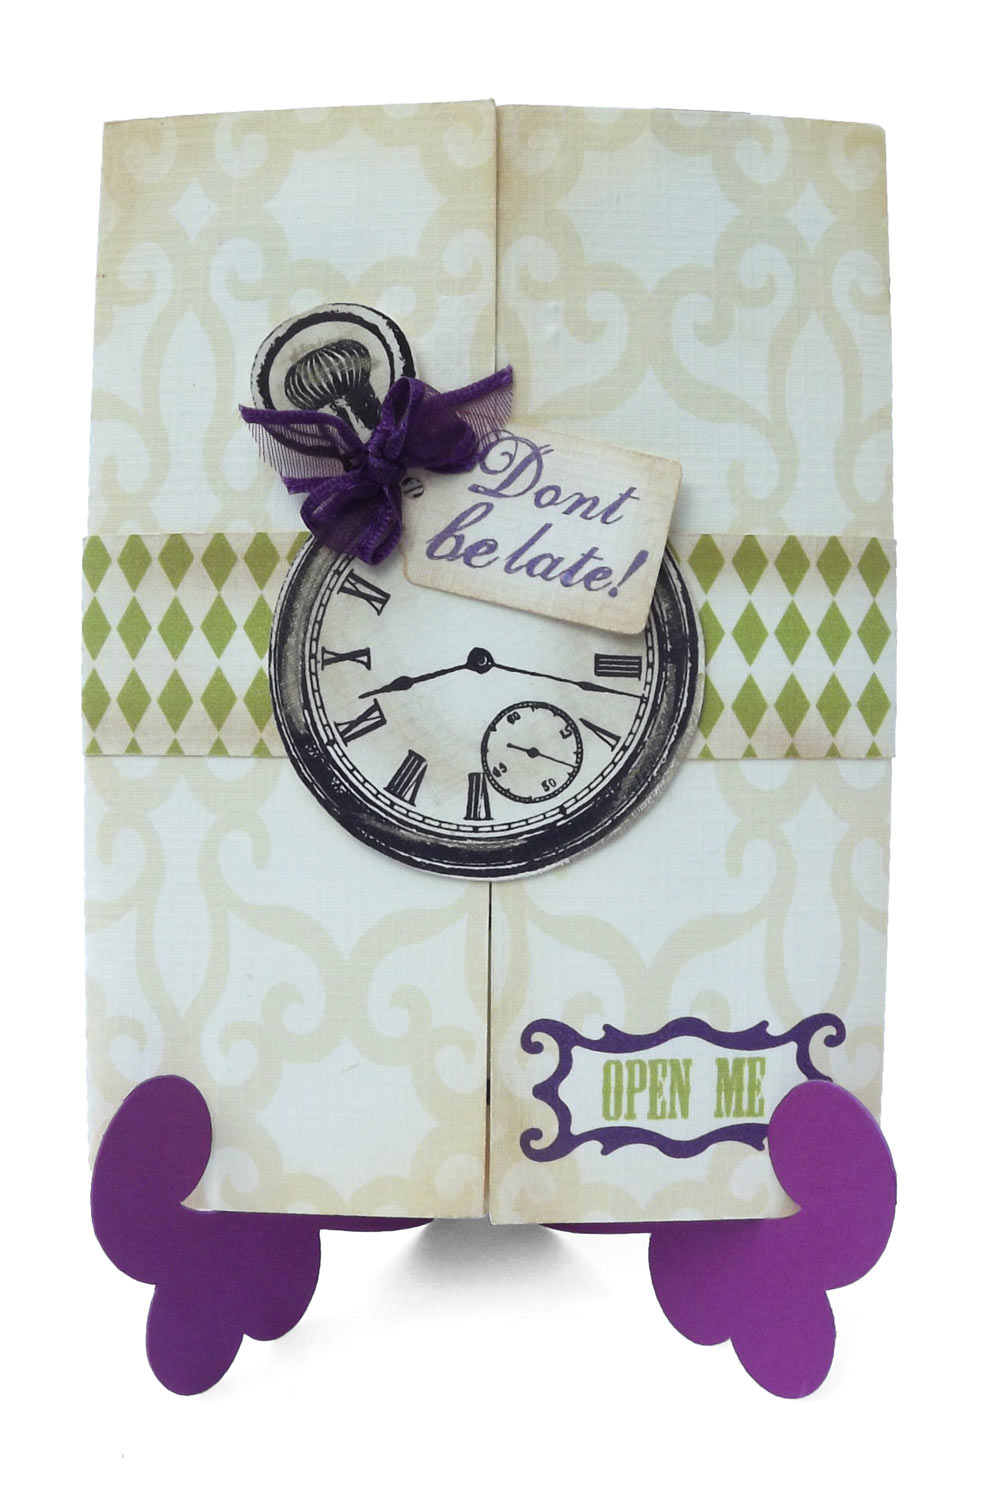 Mad Hatter Tea Party Invitation - Pazzles Craft Room